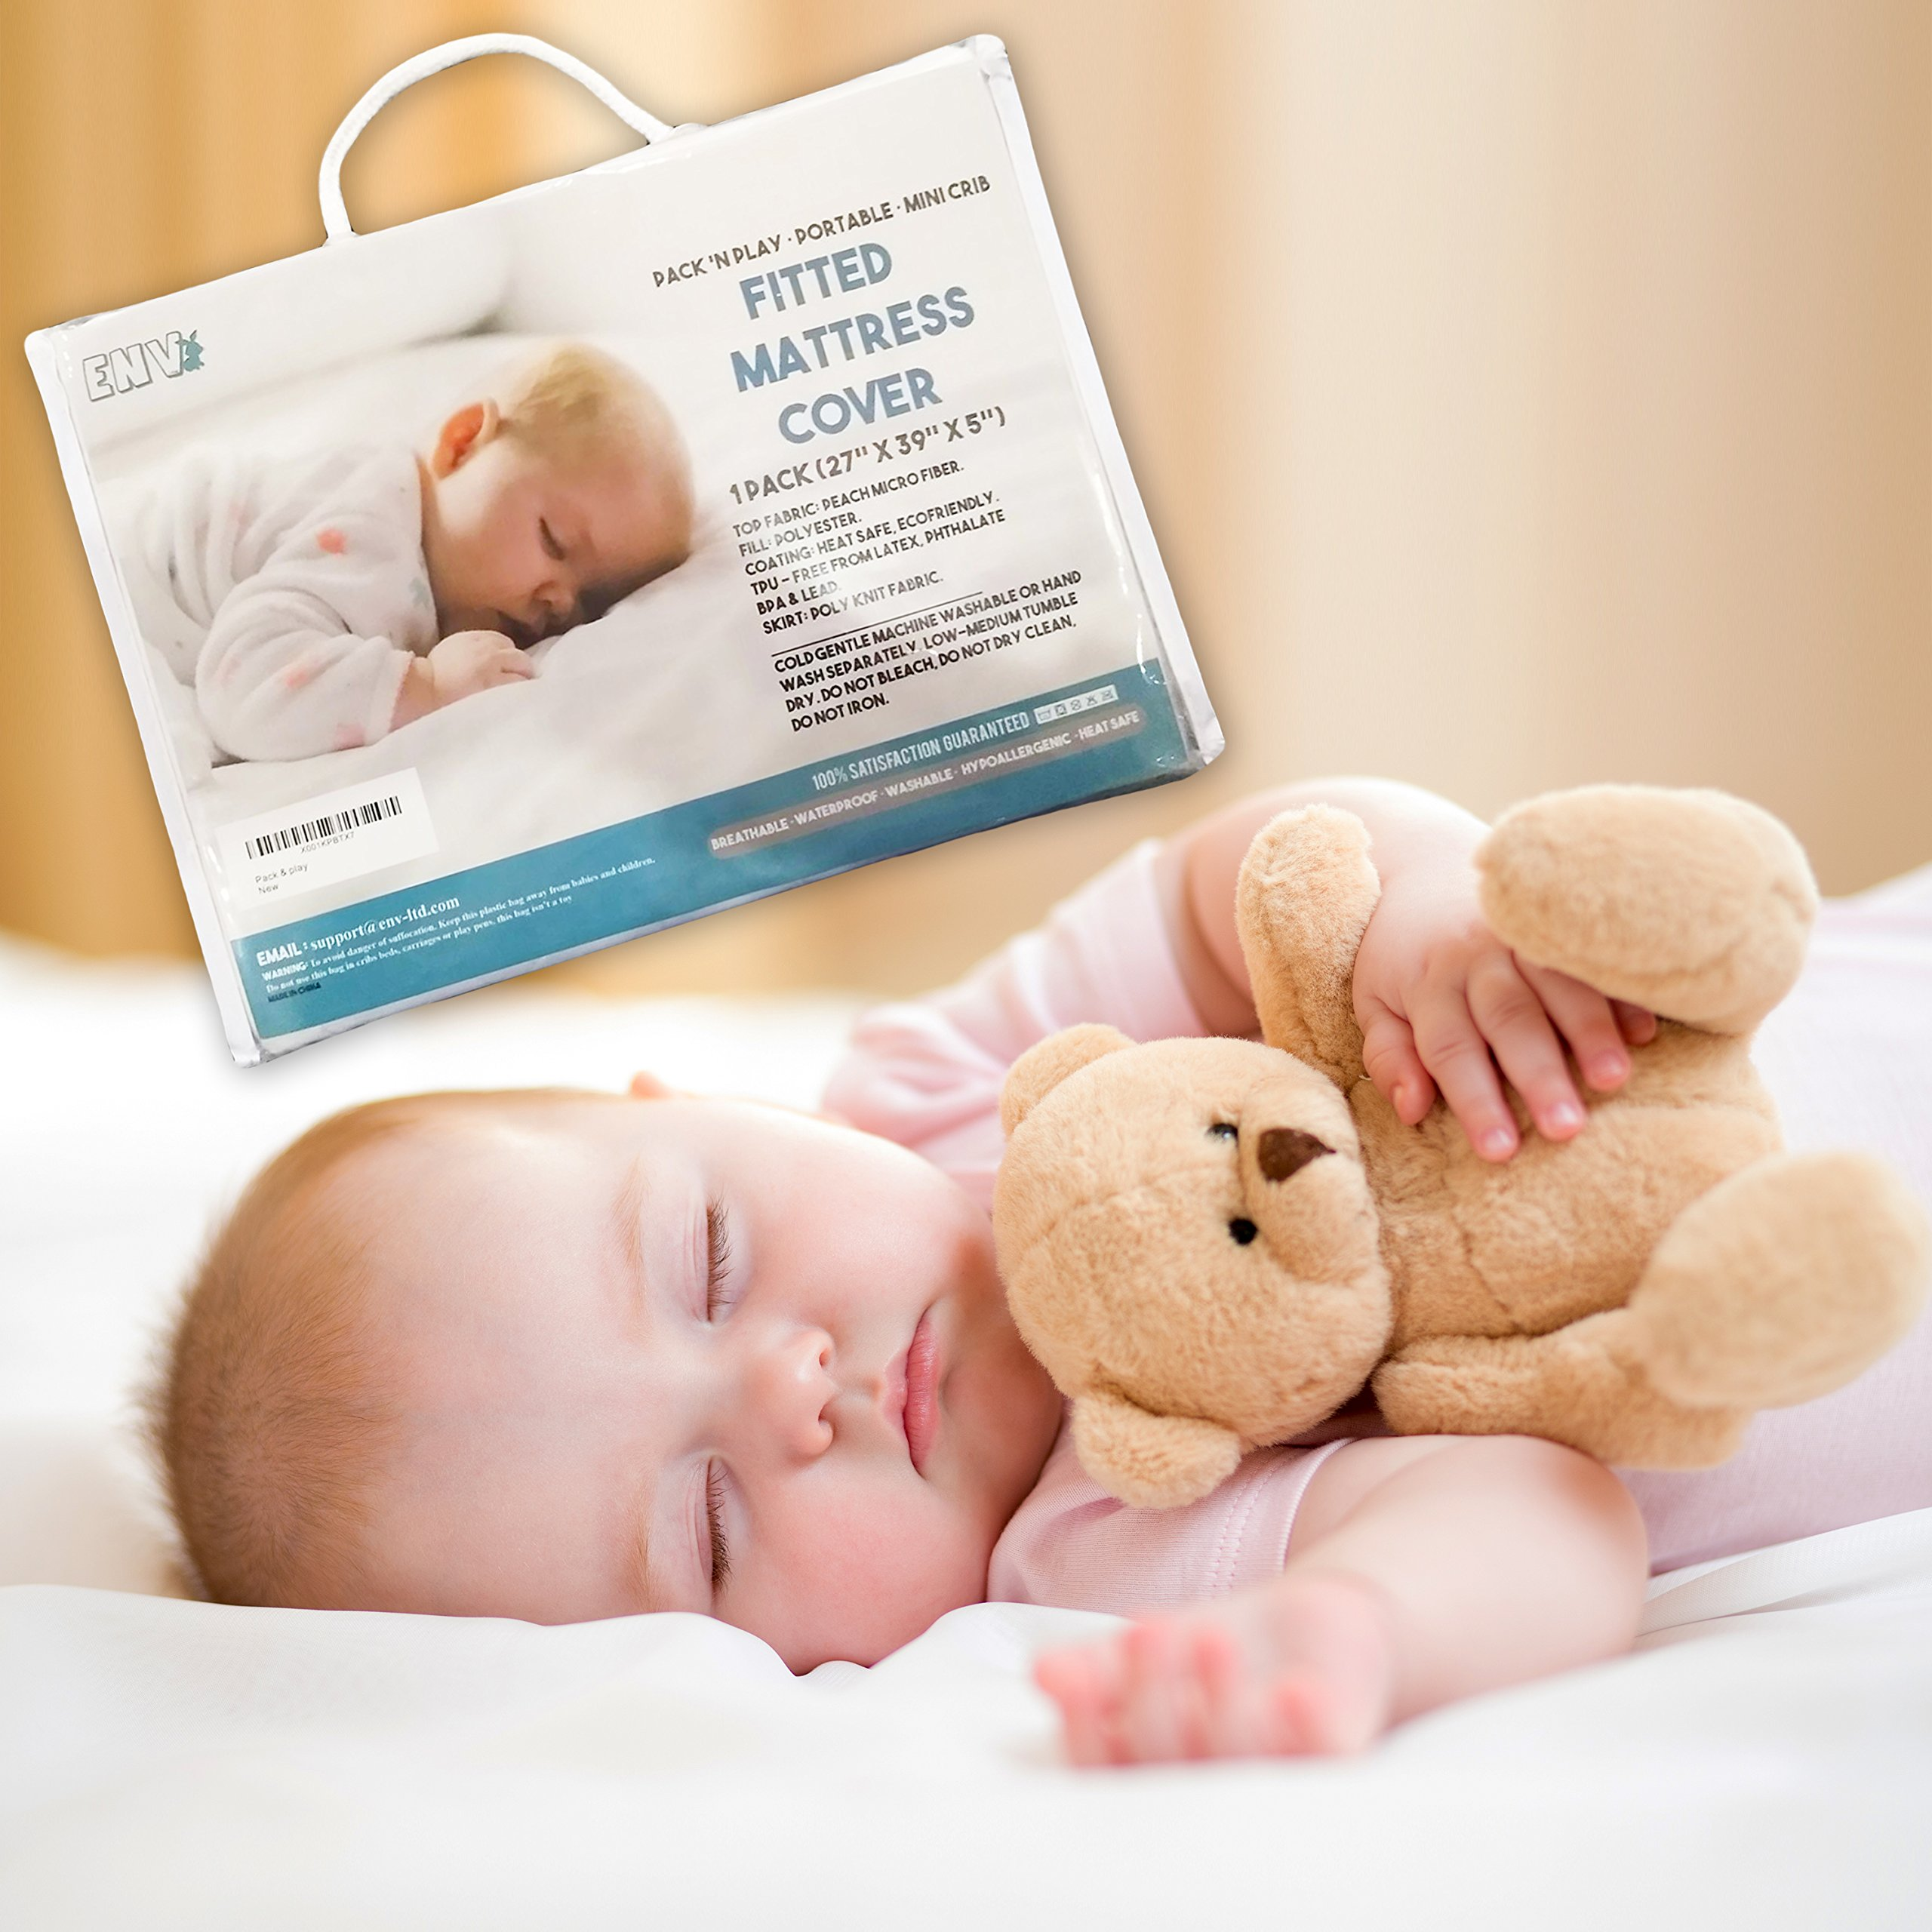 Crib Mattress Pad Cover For Baby Pack N Play Fits All